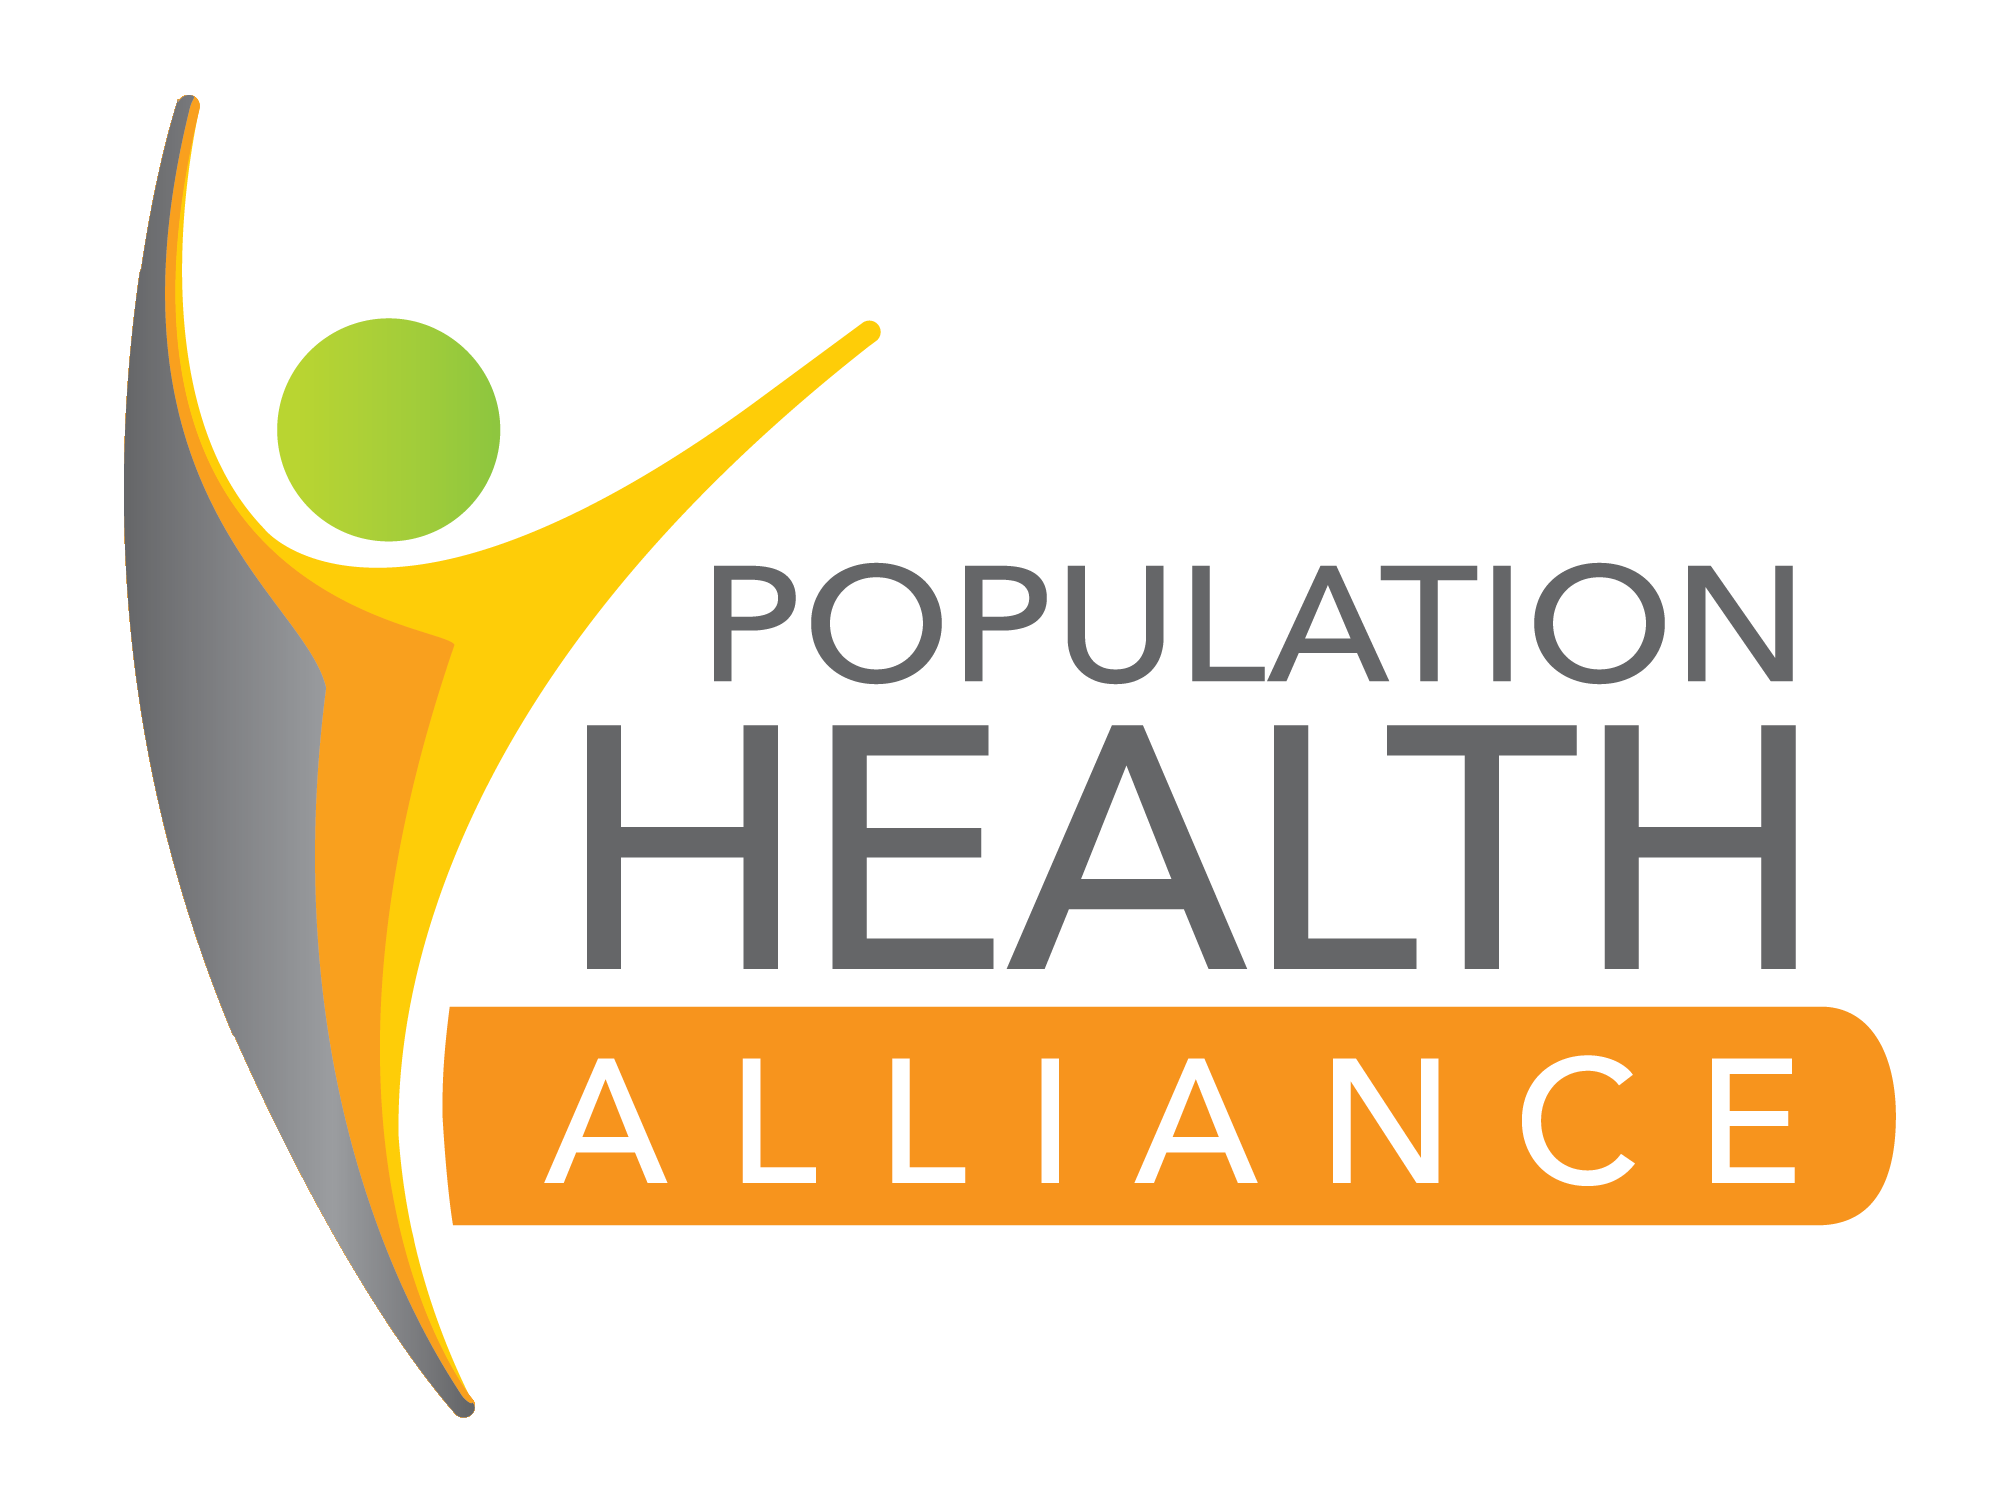 Welldoc Joins the Population Health Alliance